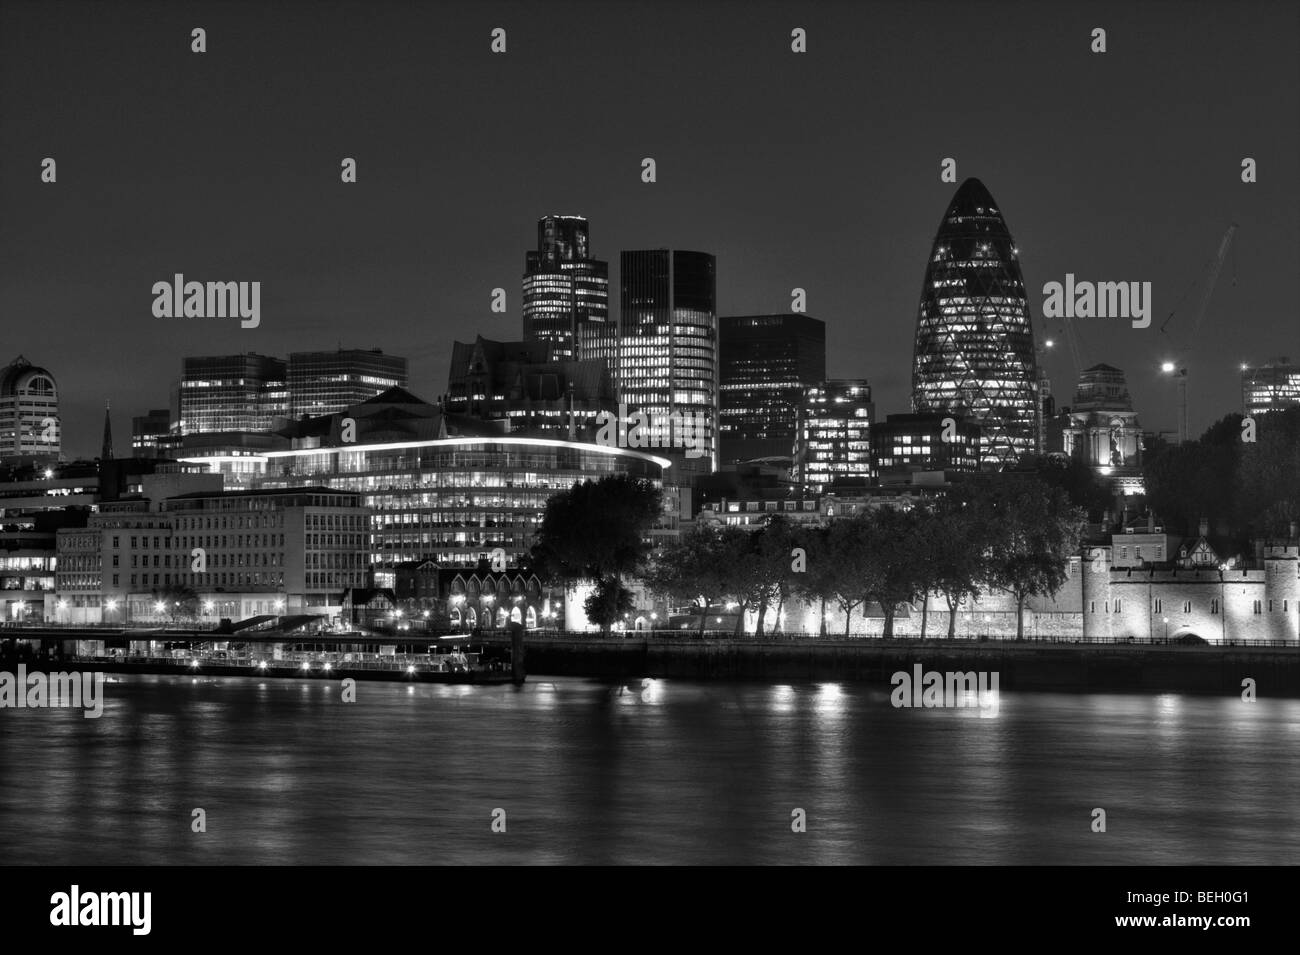 The City of London at night from across the River Thames. Black and white shot, taken in Summer 2009. - Stock Image